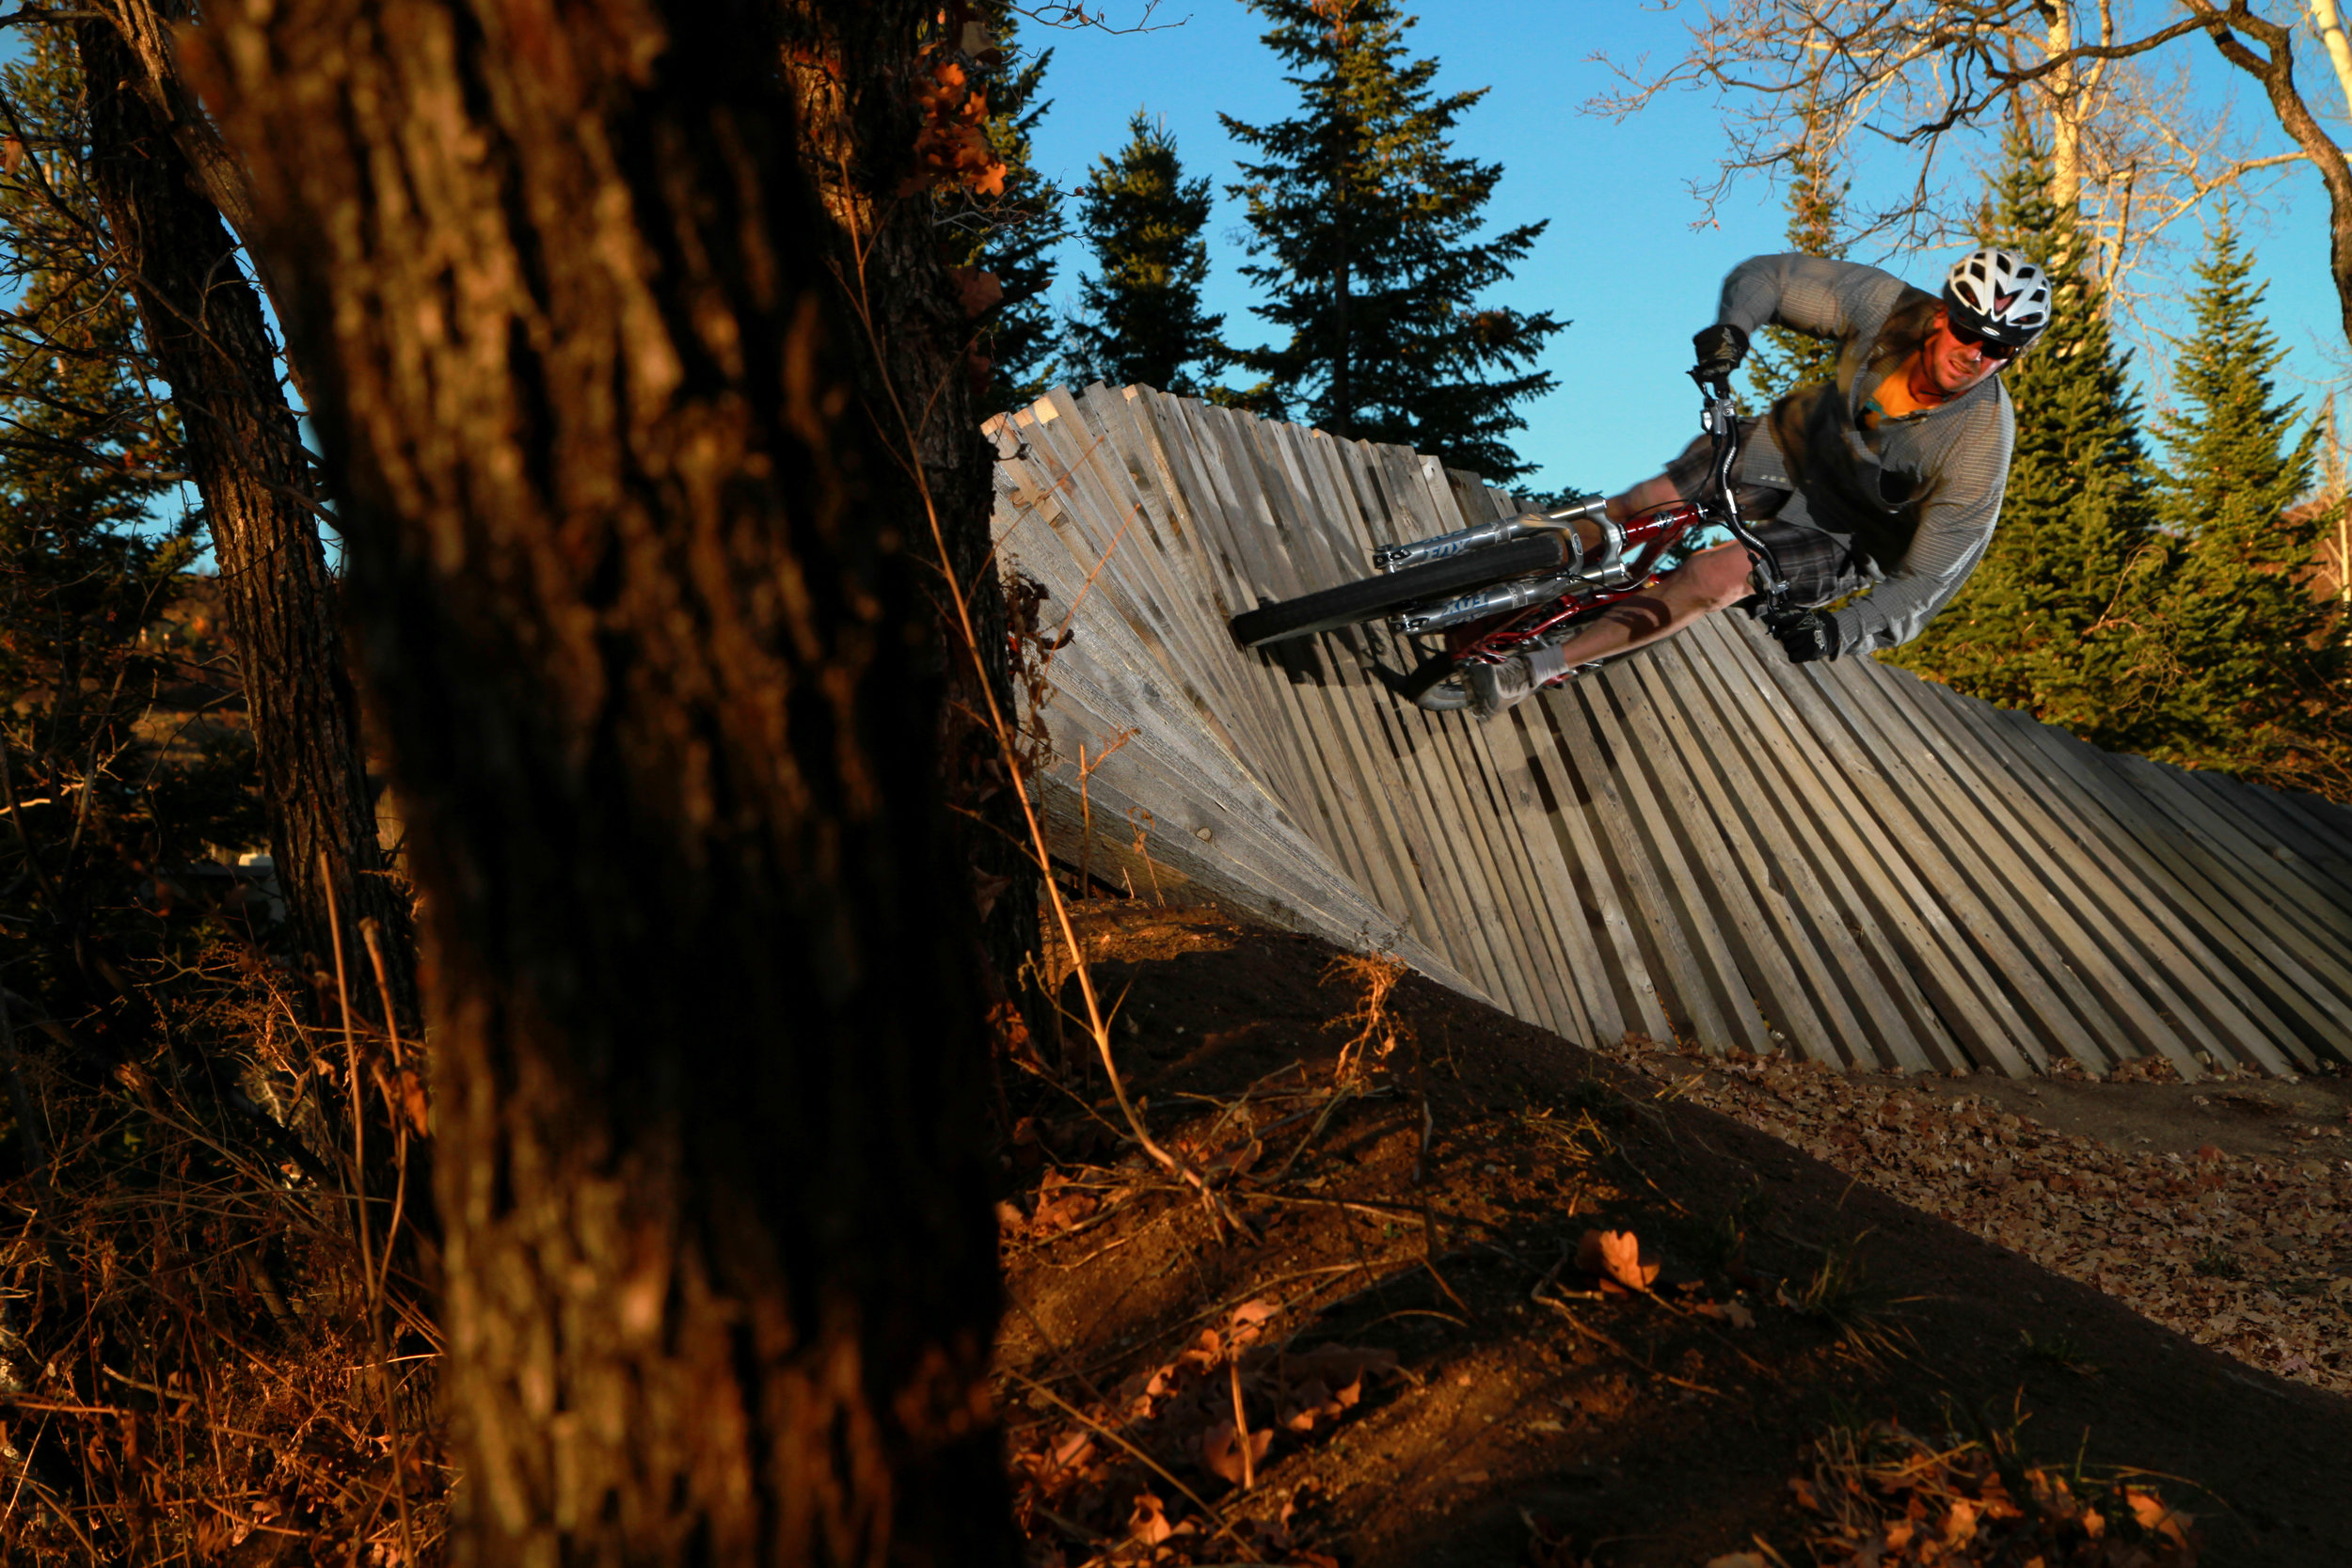 Aryeh Copa railing the wall ride on Buckin Bron at Steamboat Resort. Steamboat Springs, Colorado.